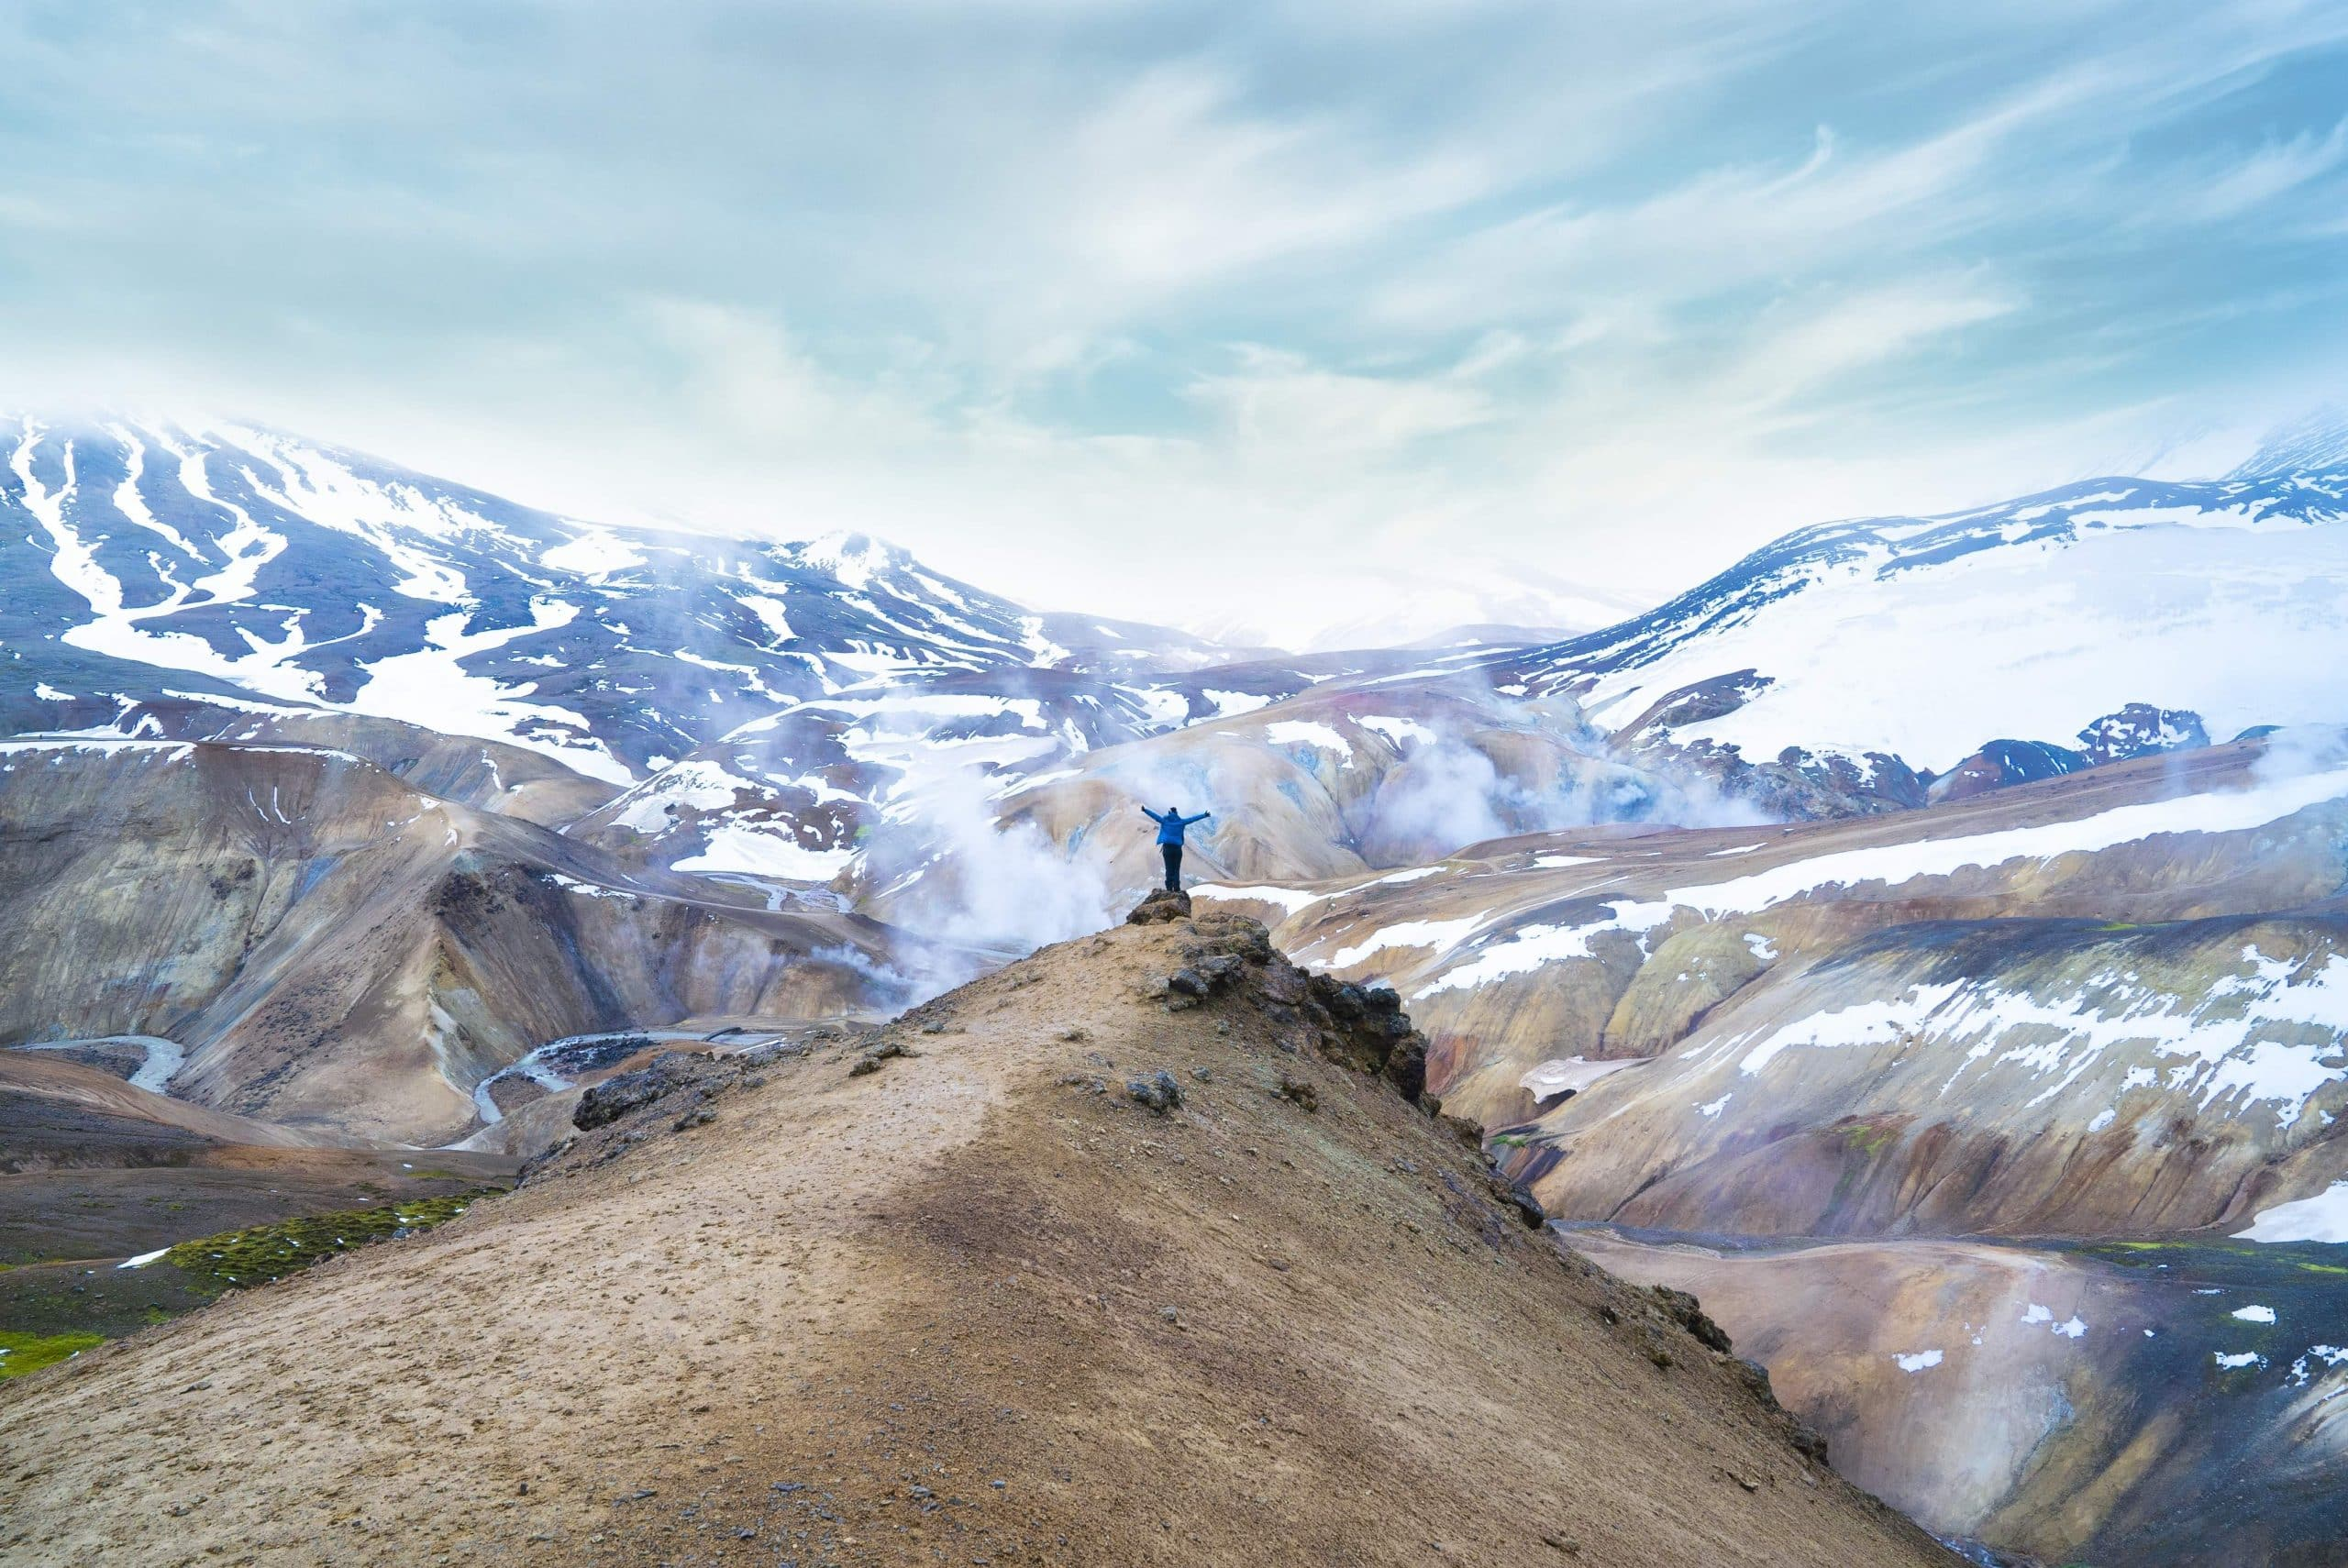 A person standing on a cliff in front of a mountain range in the Icelandic Highlands.